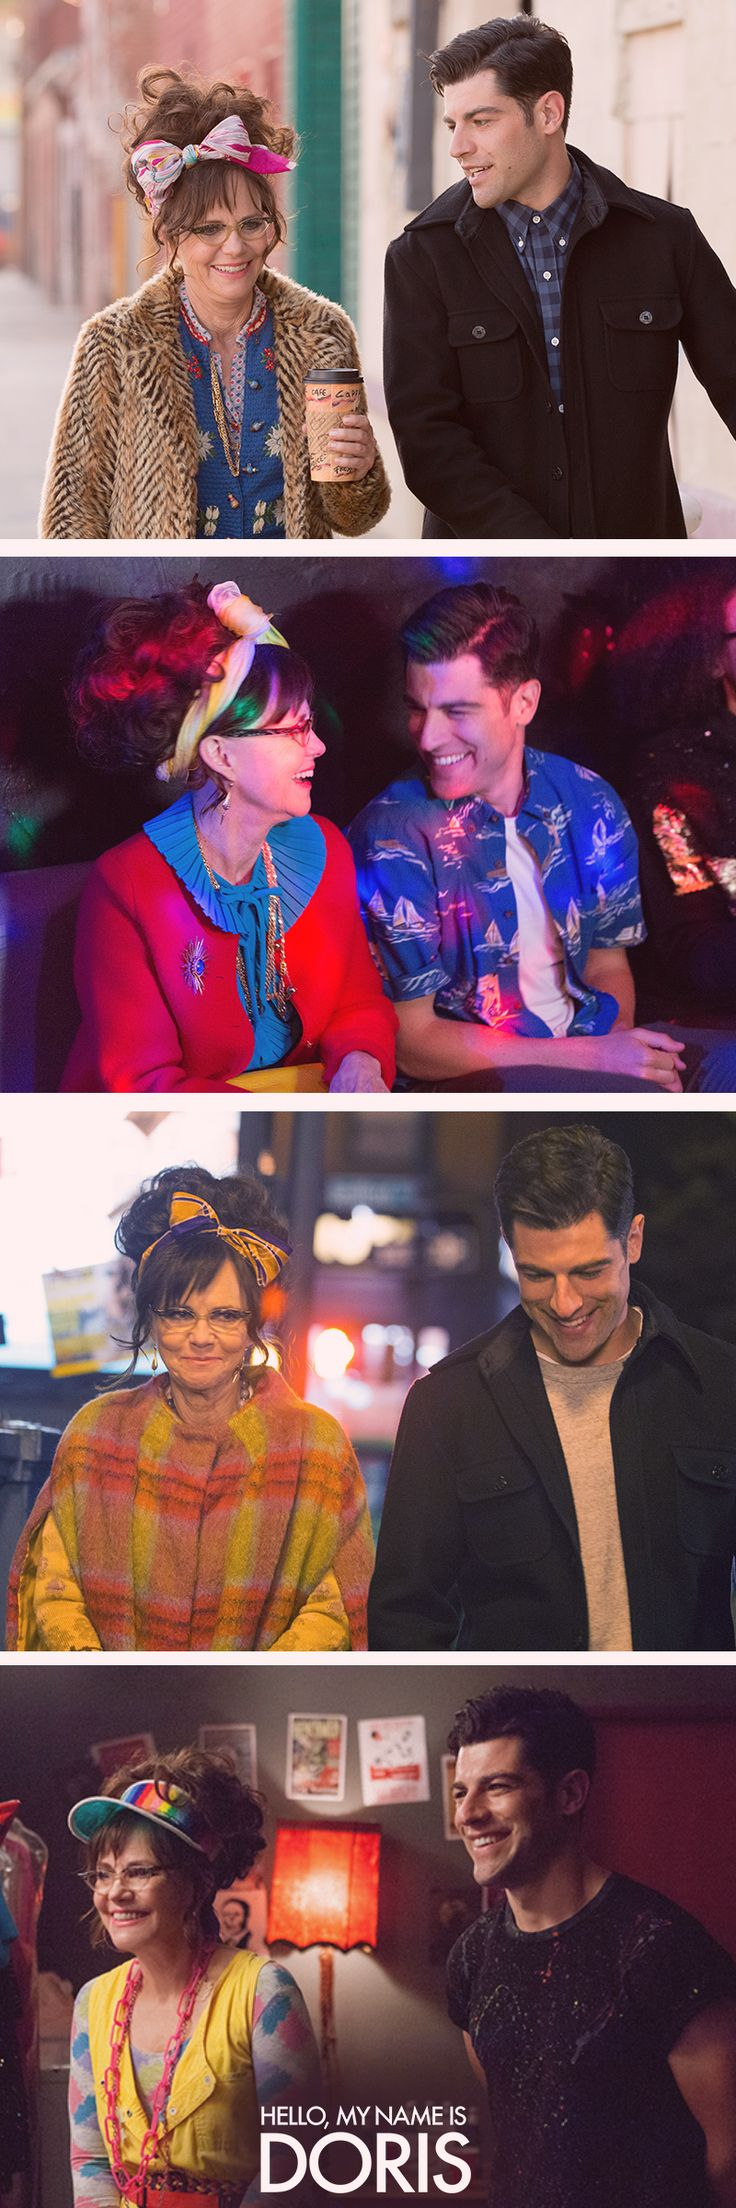 Life is a series of magic moments. Catch a glimpse of Doris Miller's life in 'Hello, My Name Is Doris', starring Sally Field and Max Greenfield. | #hellomynameisdoris is now available on Blu-ray